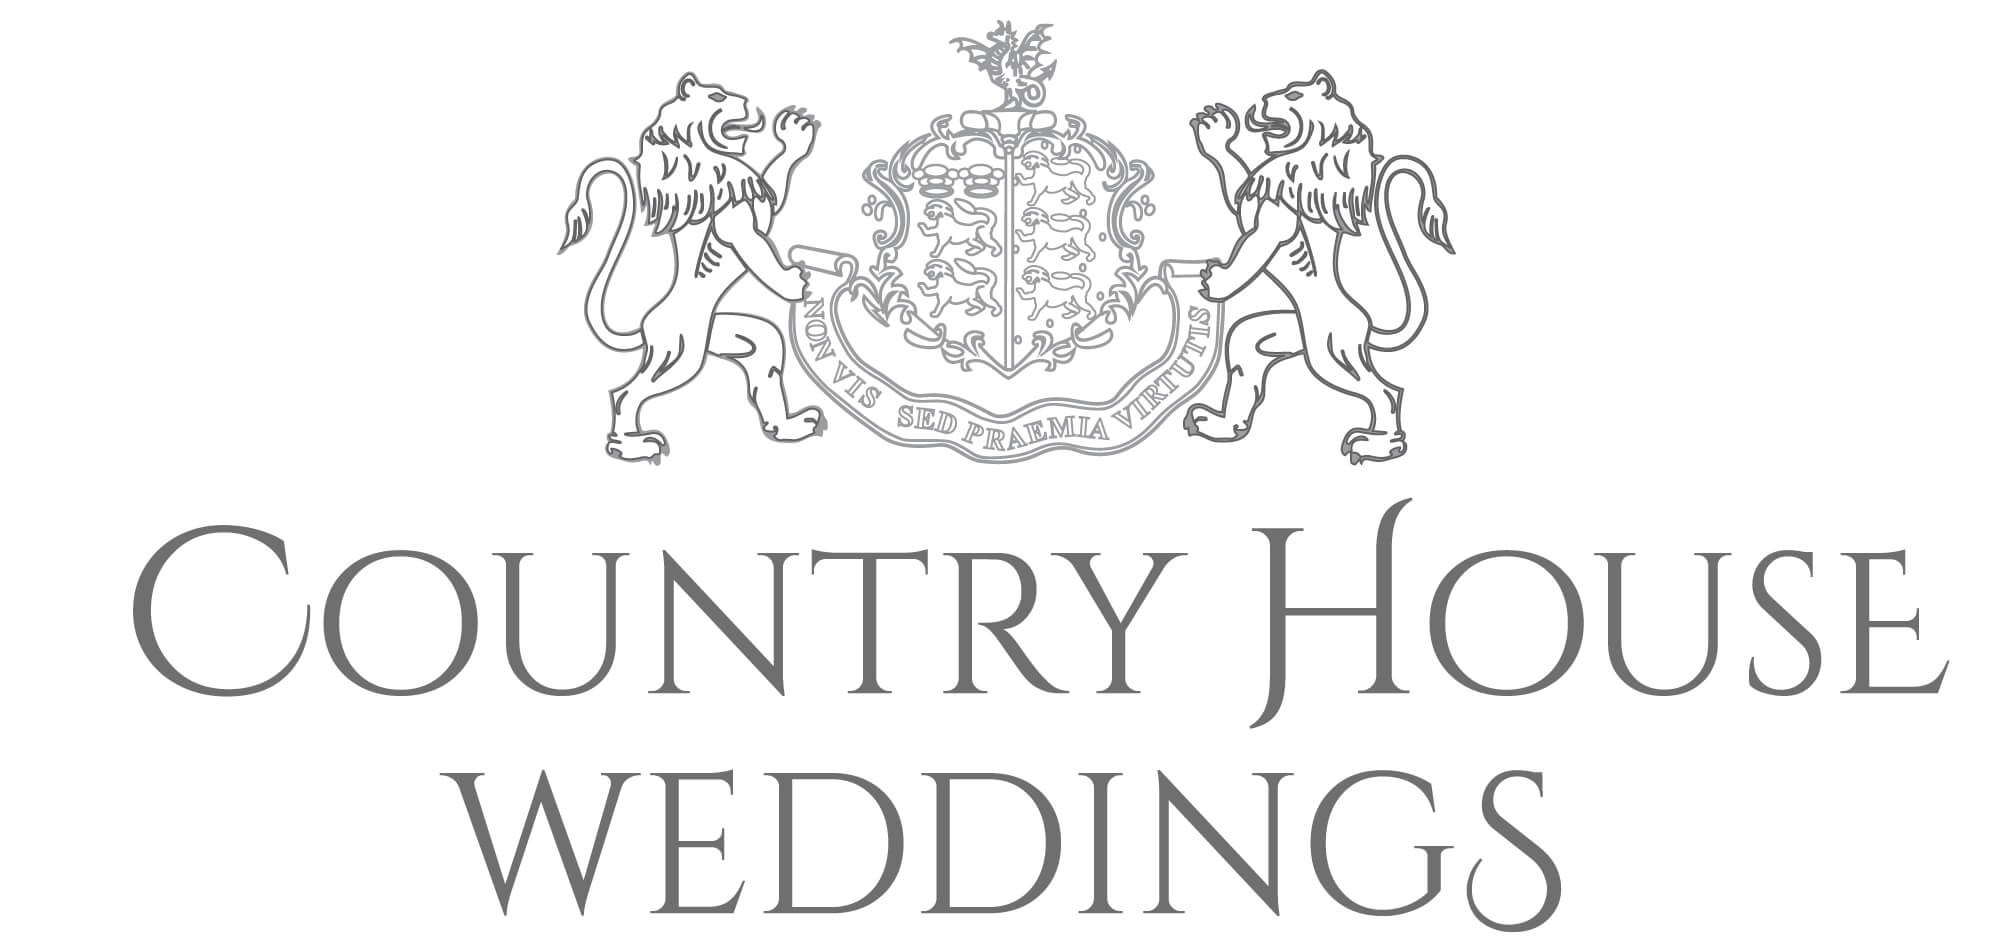 Country House Weddings logo